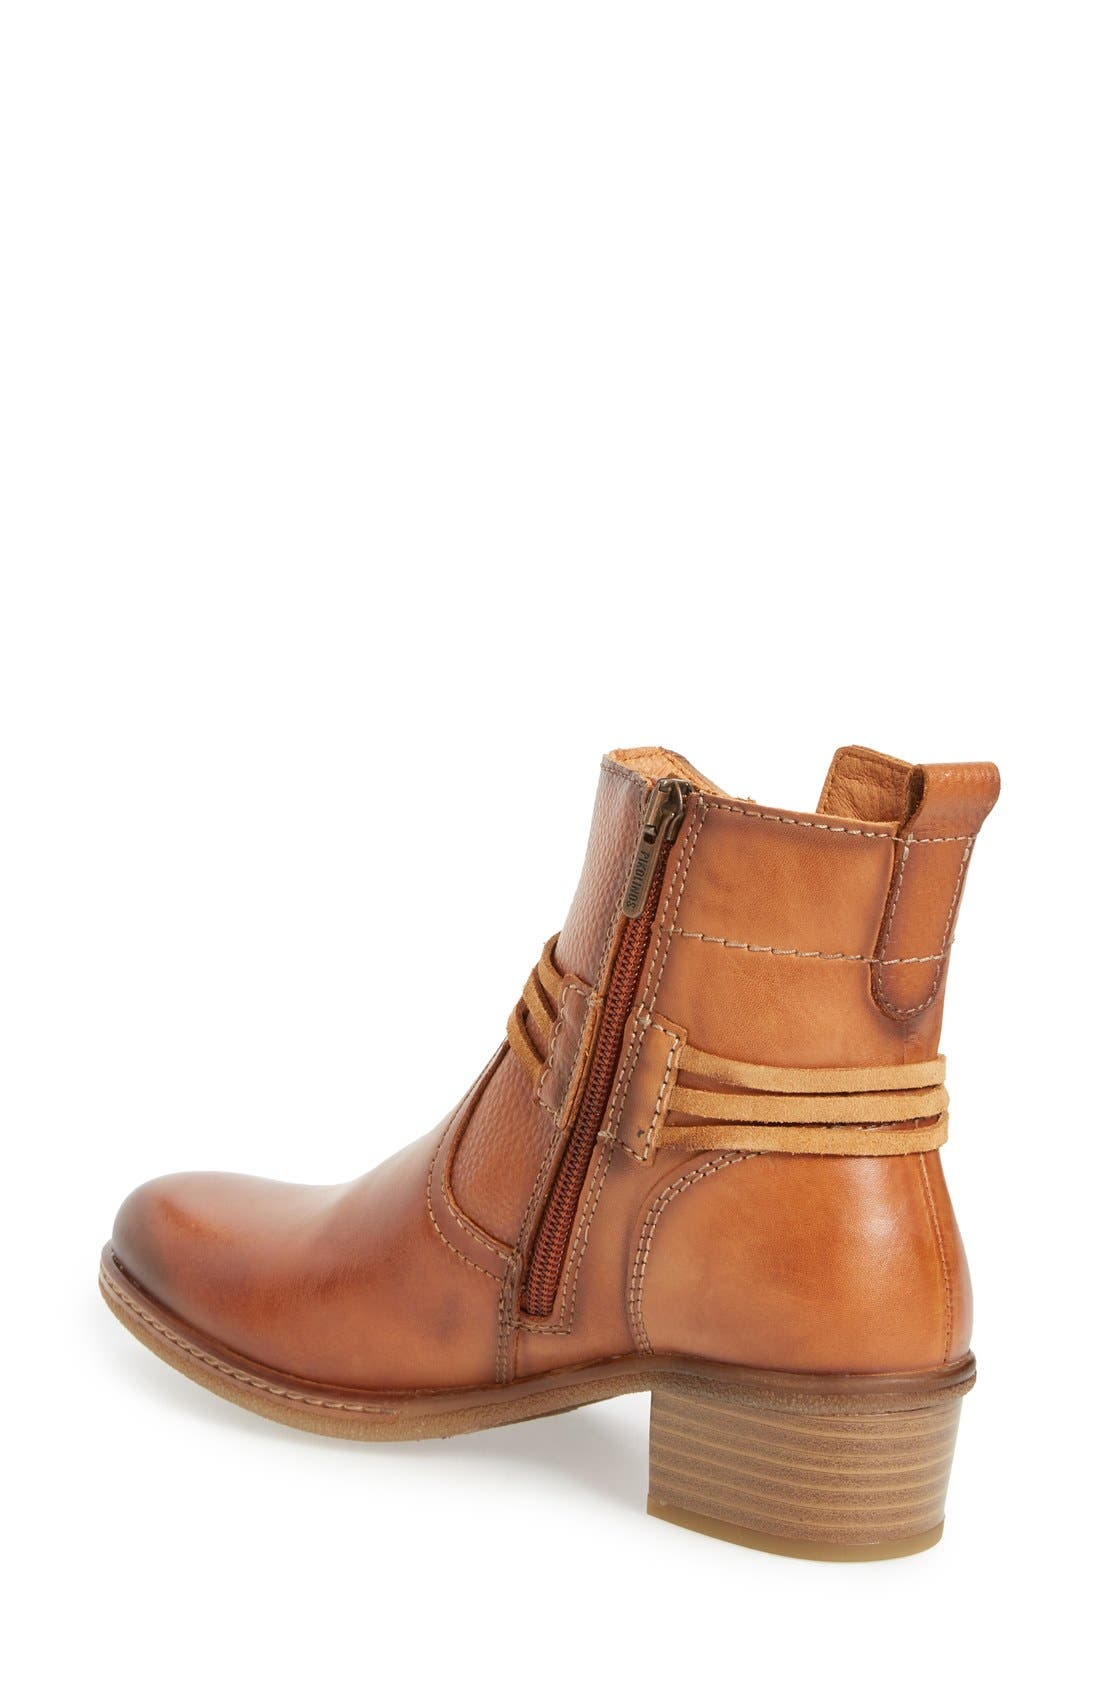 'Zaragoza' Bootie,                             Alternate thumbnail 2, color,                             Brandy Leather